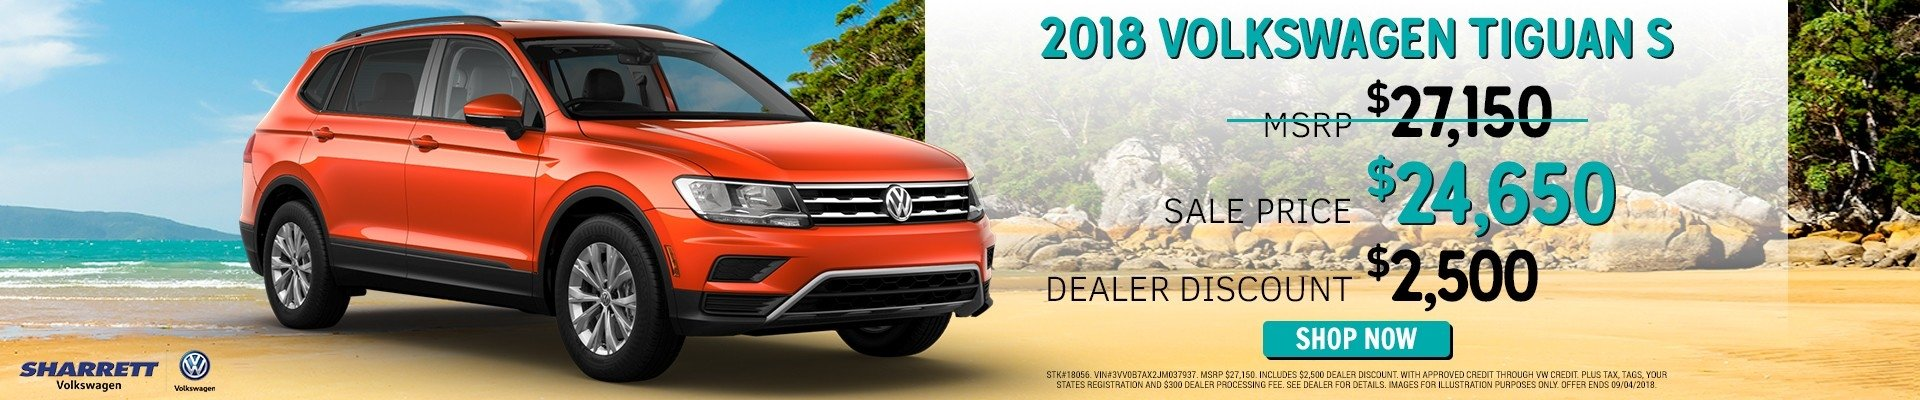 Save $2500 on a new 2018 VW Tiguan S | Sharrett Volkswagen